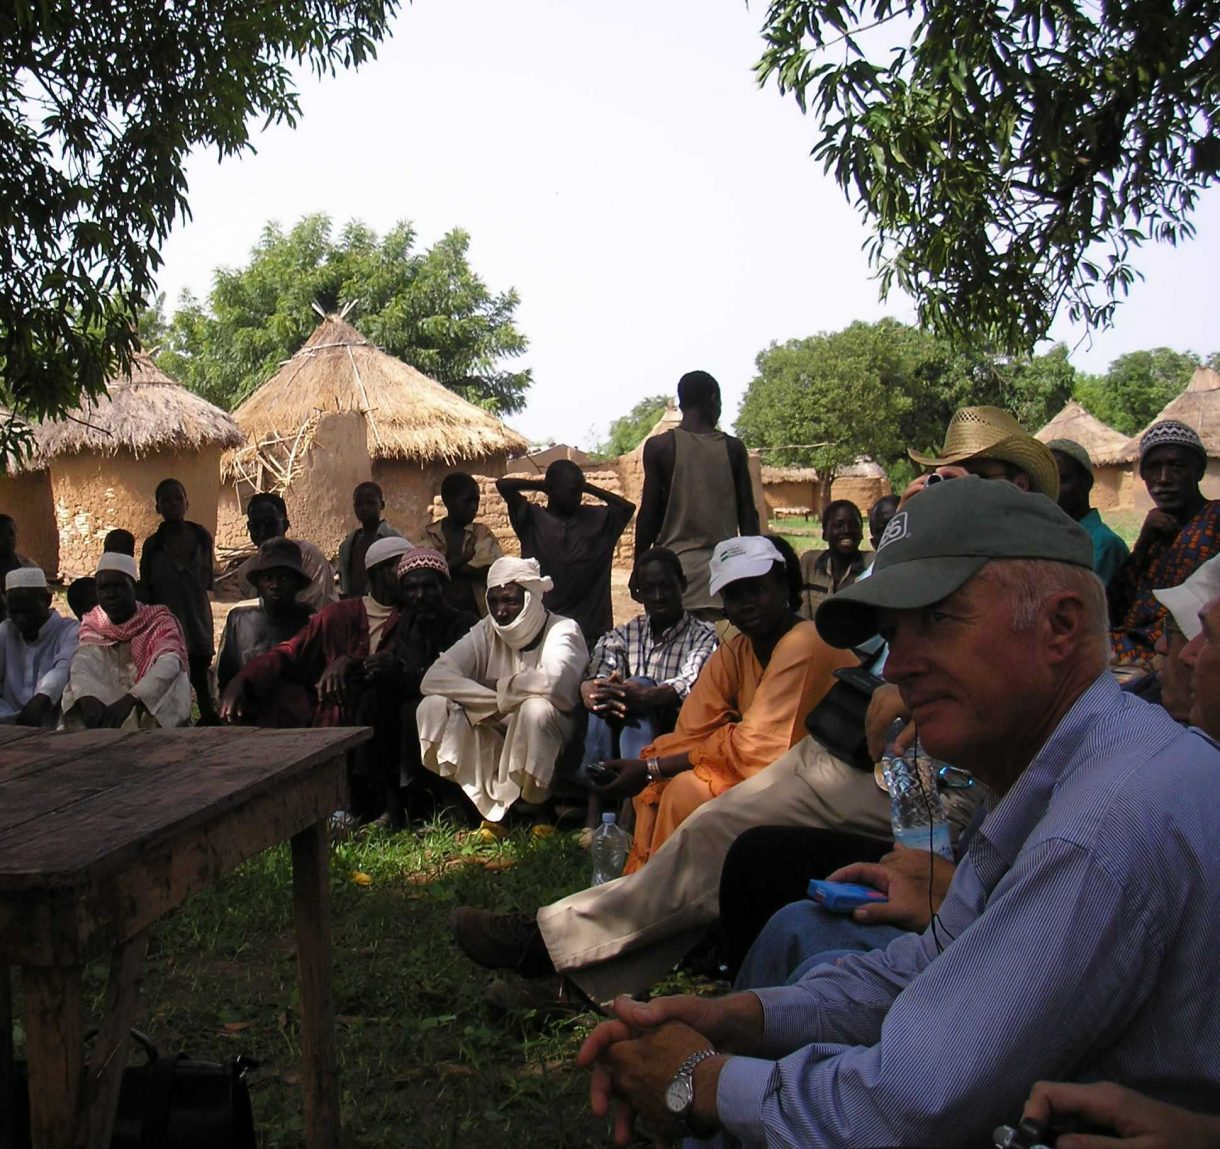 US farmer Charlie Melander visits with farmers in Mali. Photo by Jim French/Oxfam America